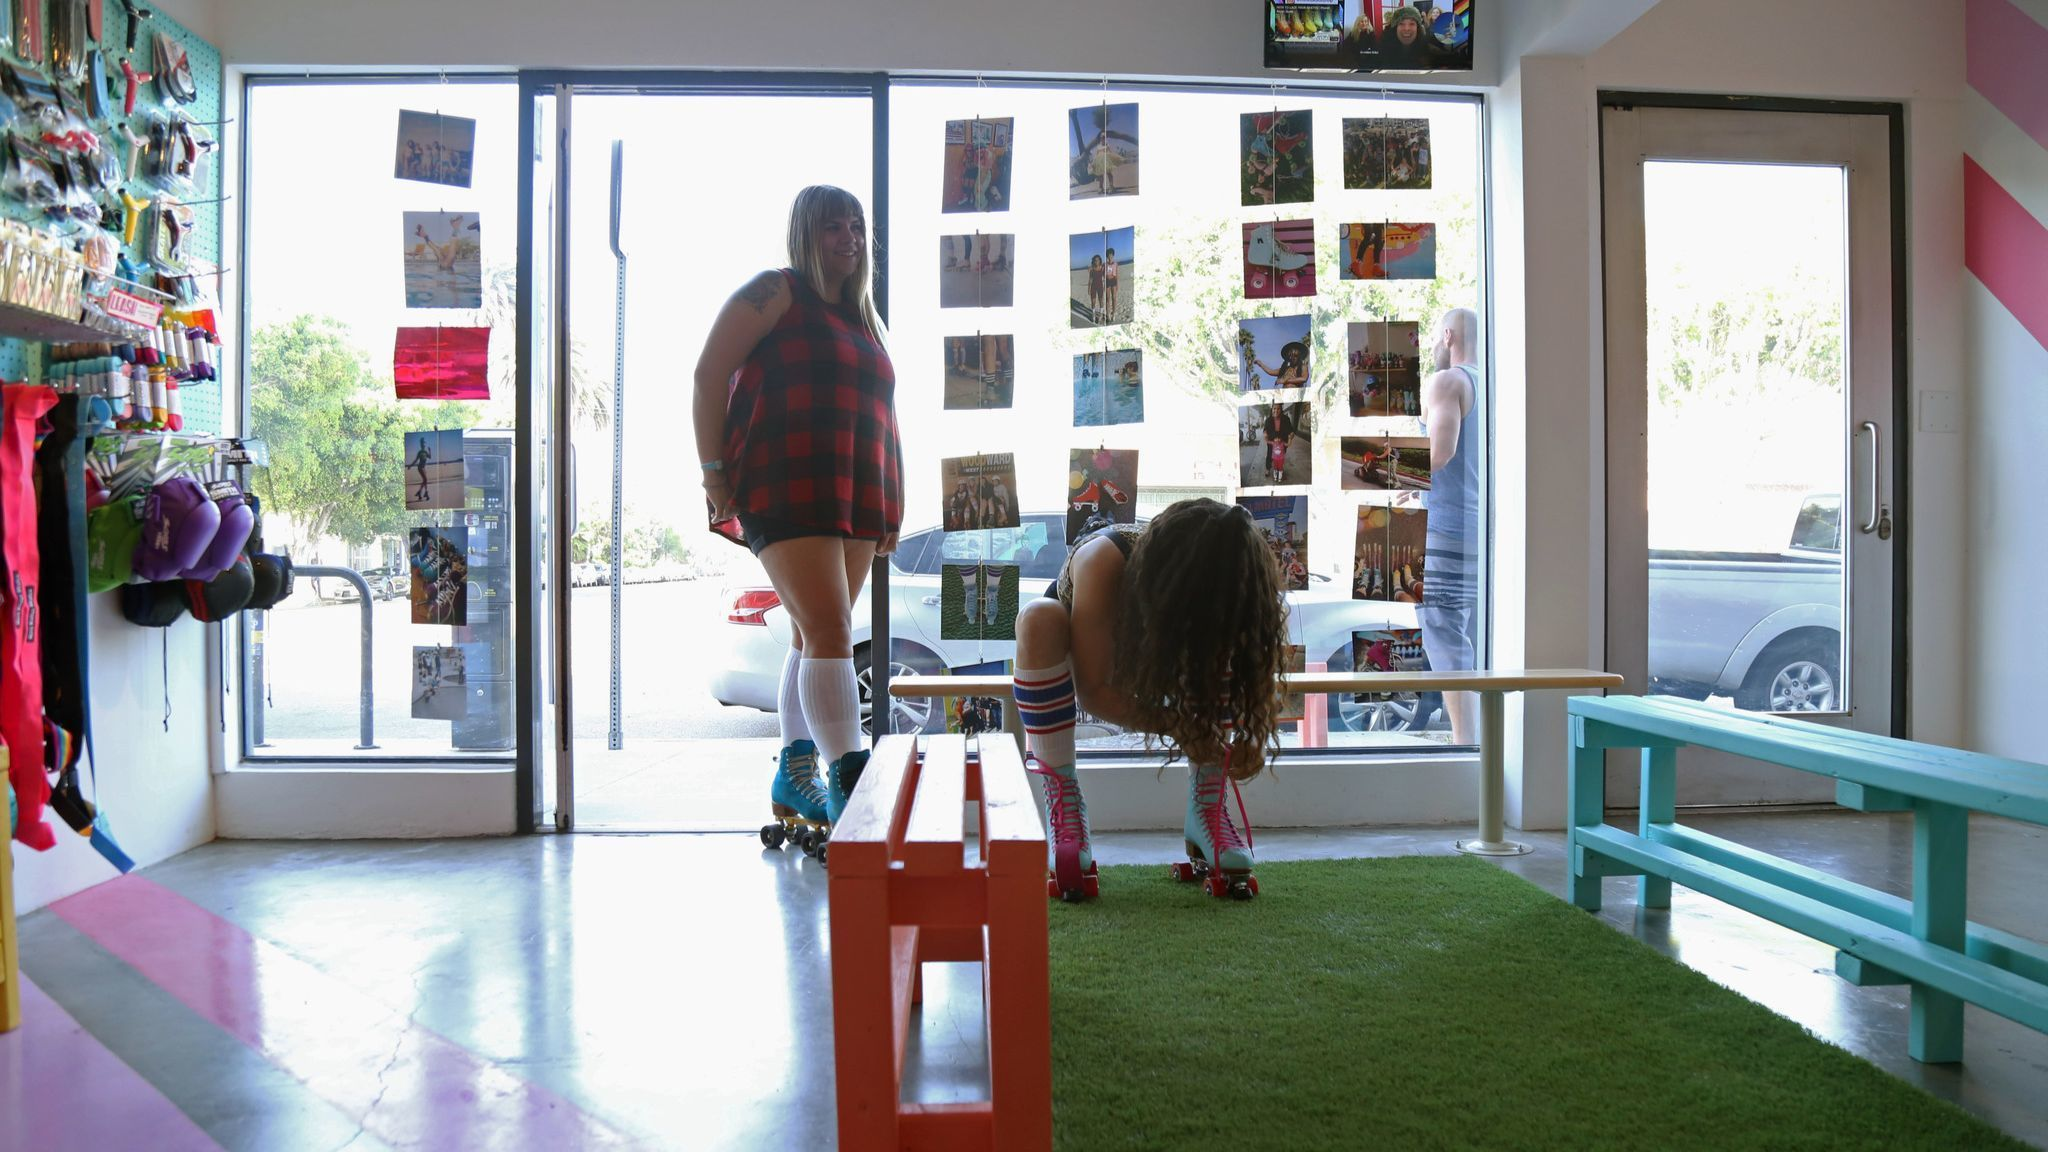 Shayna Meikle stands in the new Moxi roller skating shop in Venice.